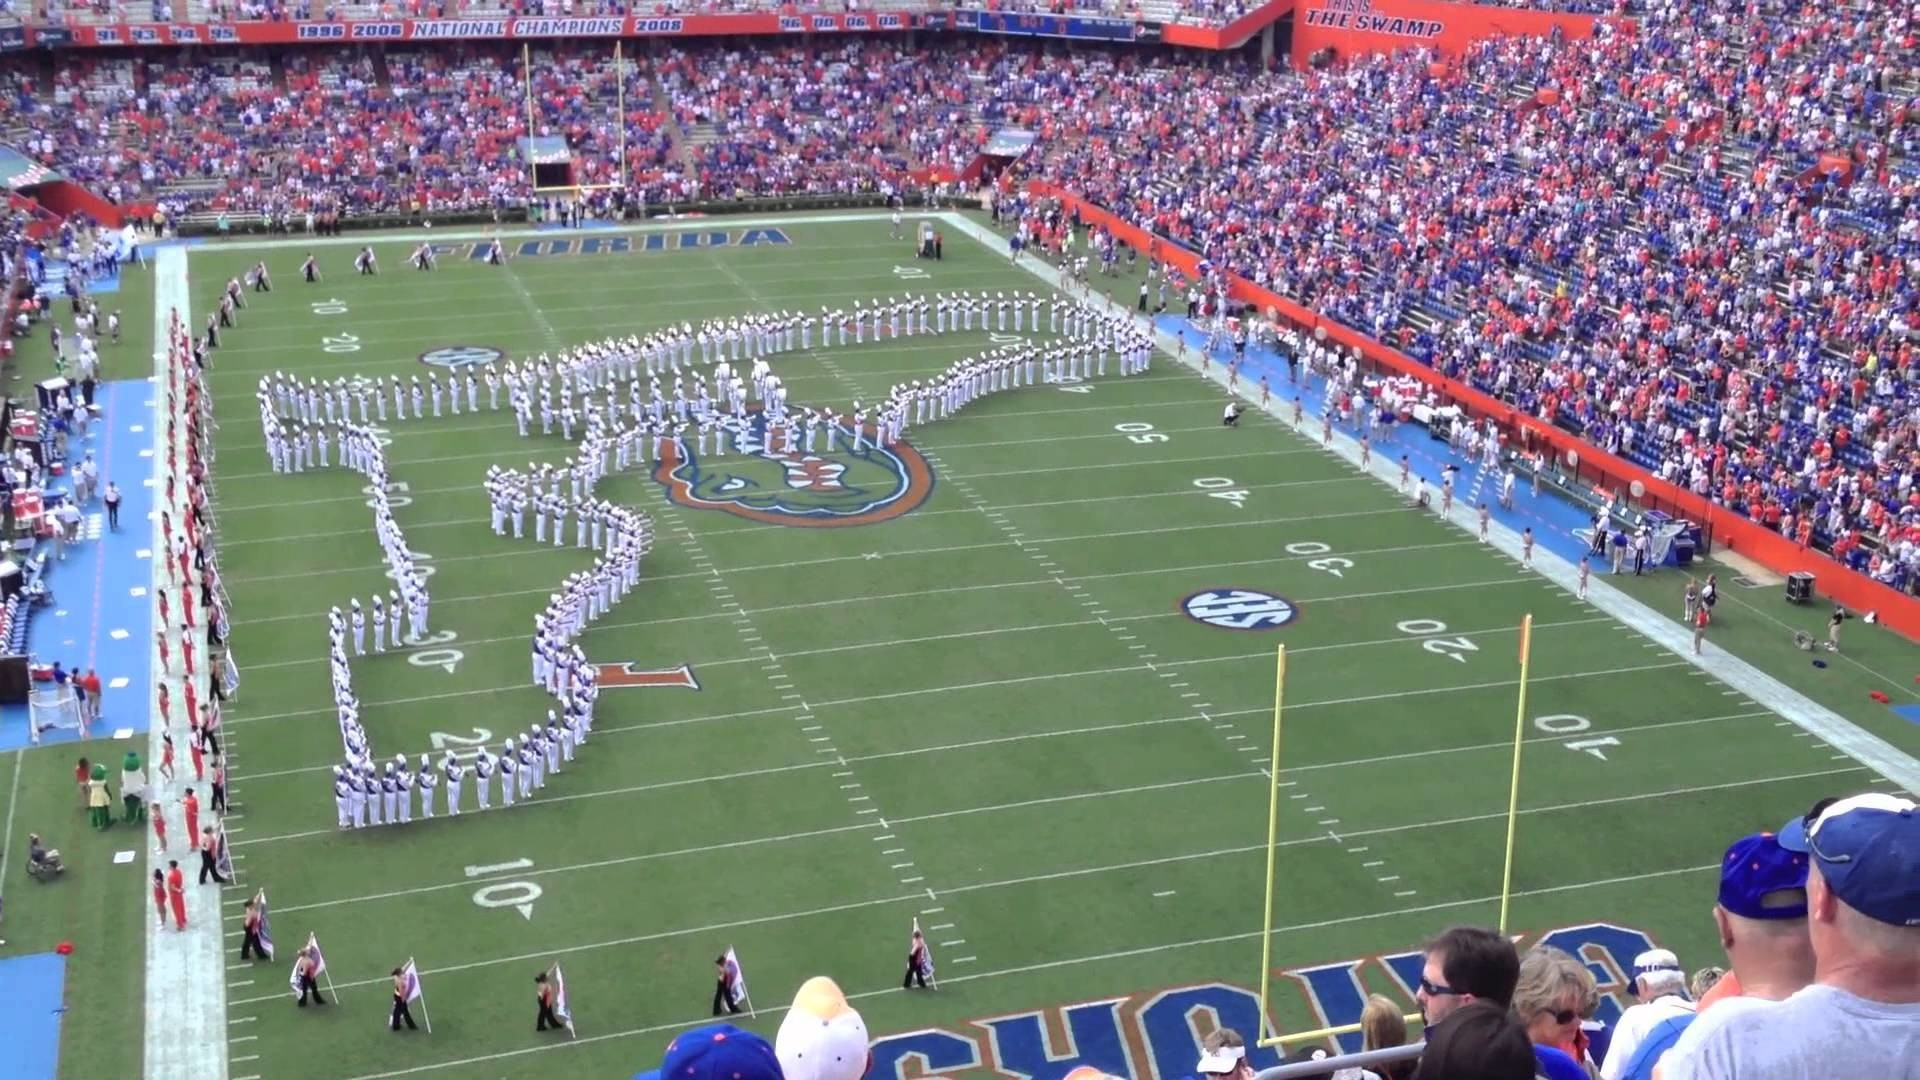 1920x1080  Generic Wallpapers, 45++ Generic Wallpapers And Photos In HD ...  px · Free Florida Gators IPhone Wallpapers.